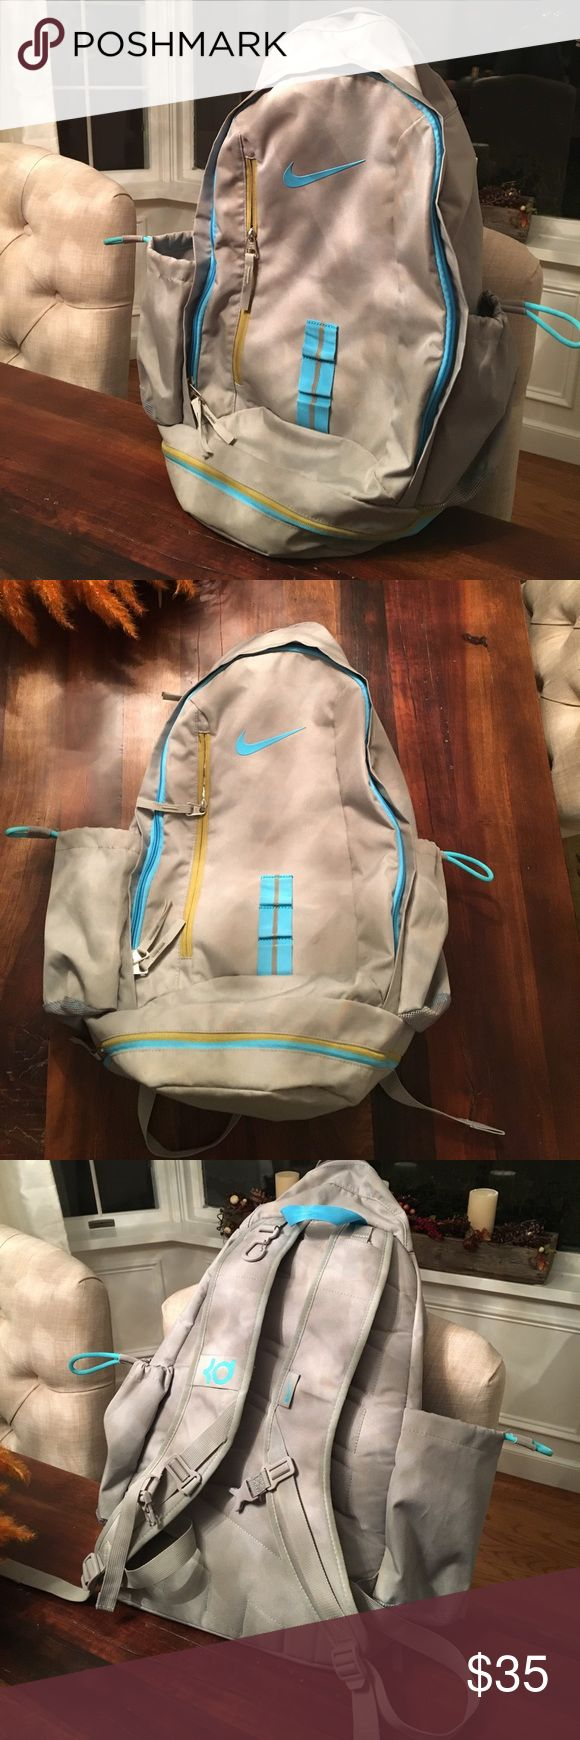 Nike KD Backpack Gently used KD backpack. Has multiple big pockets and is a gray color with blue detailing, there's one slight pen mark that's pictured. Nike Bags Backpacks